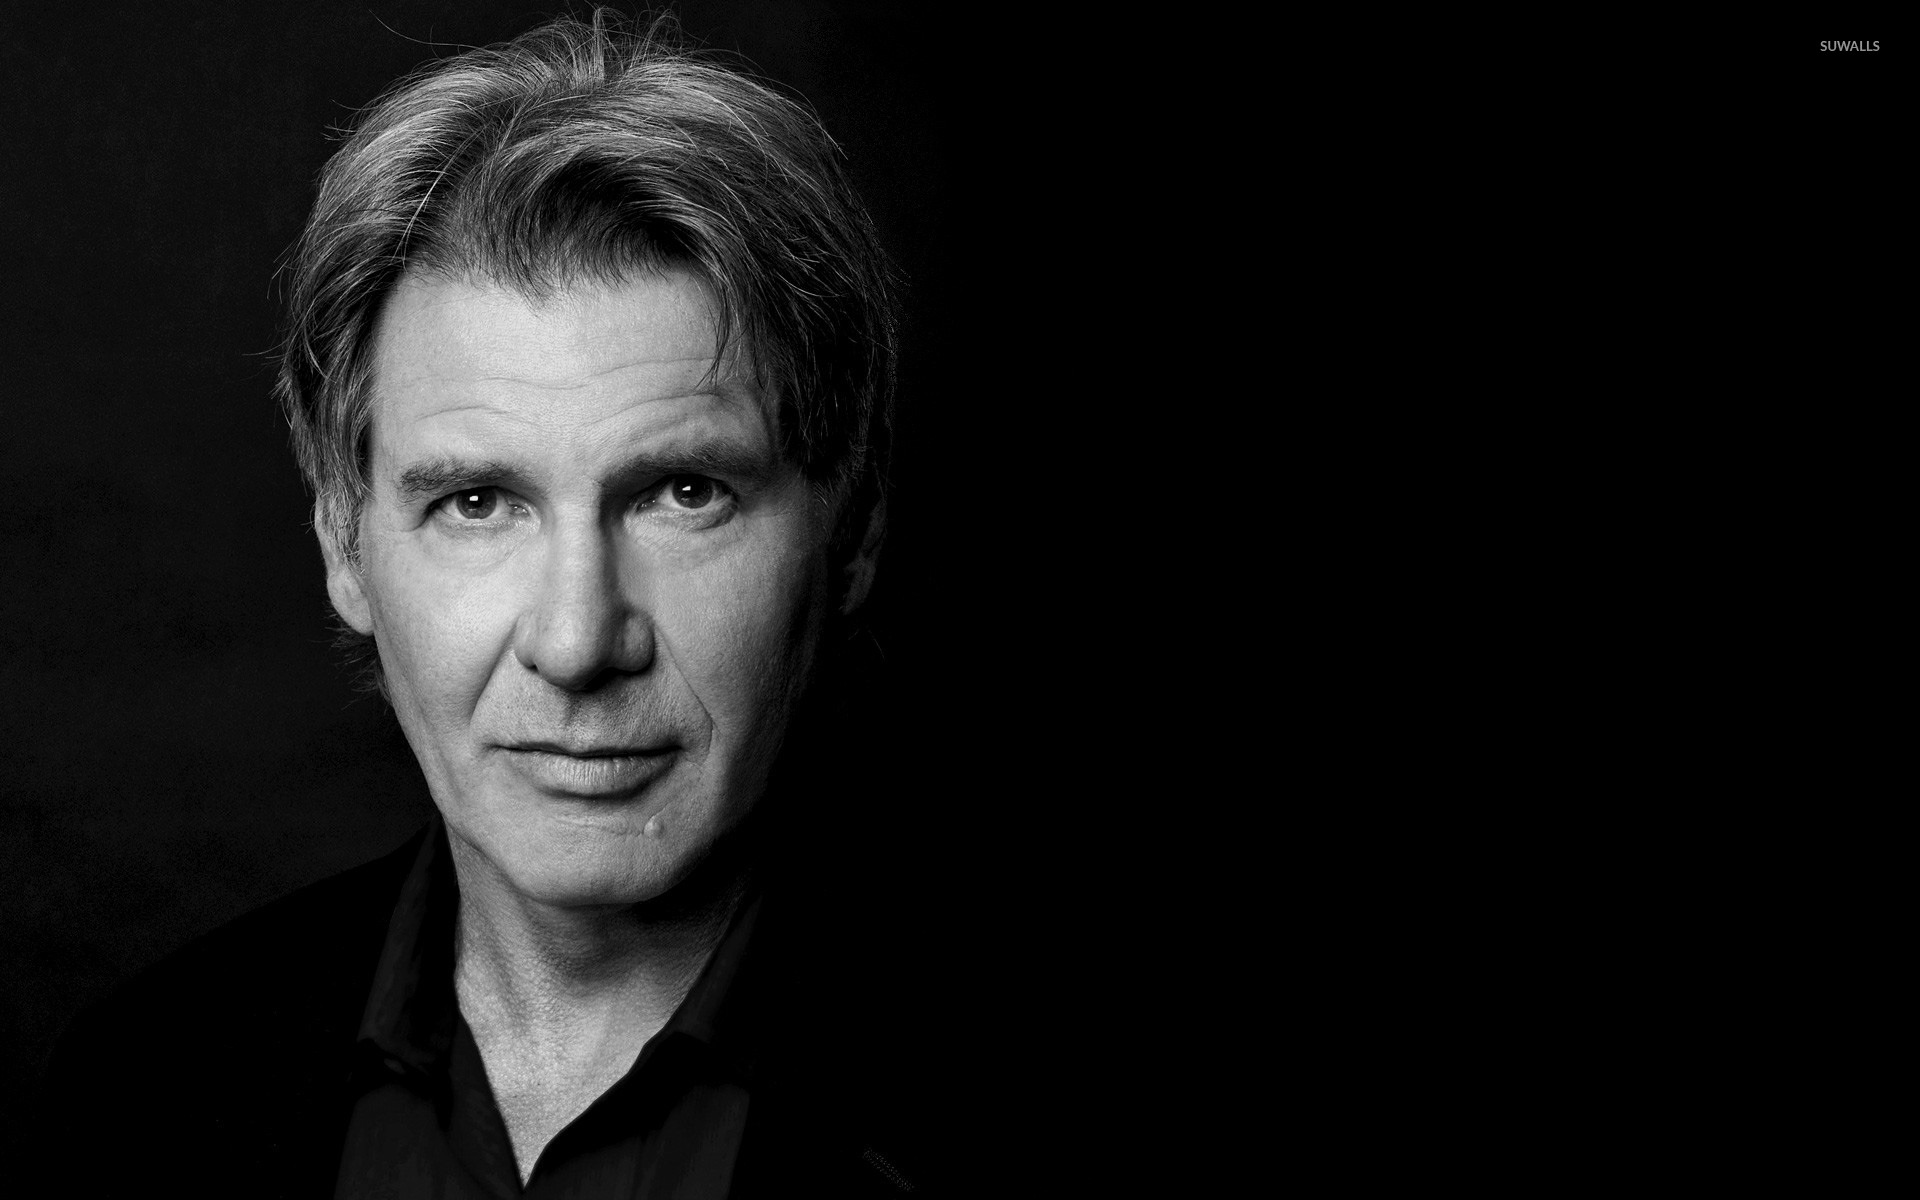 Harrison Ford wallpaper   Male celebrity wallpapers   9617 1920x1200